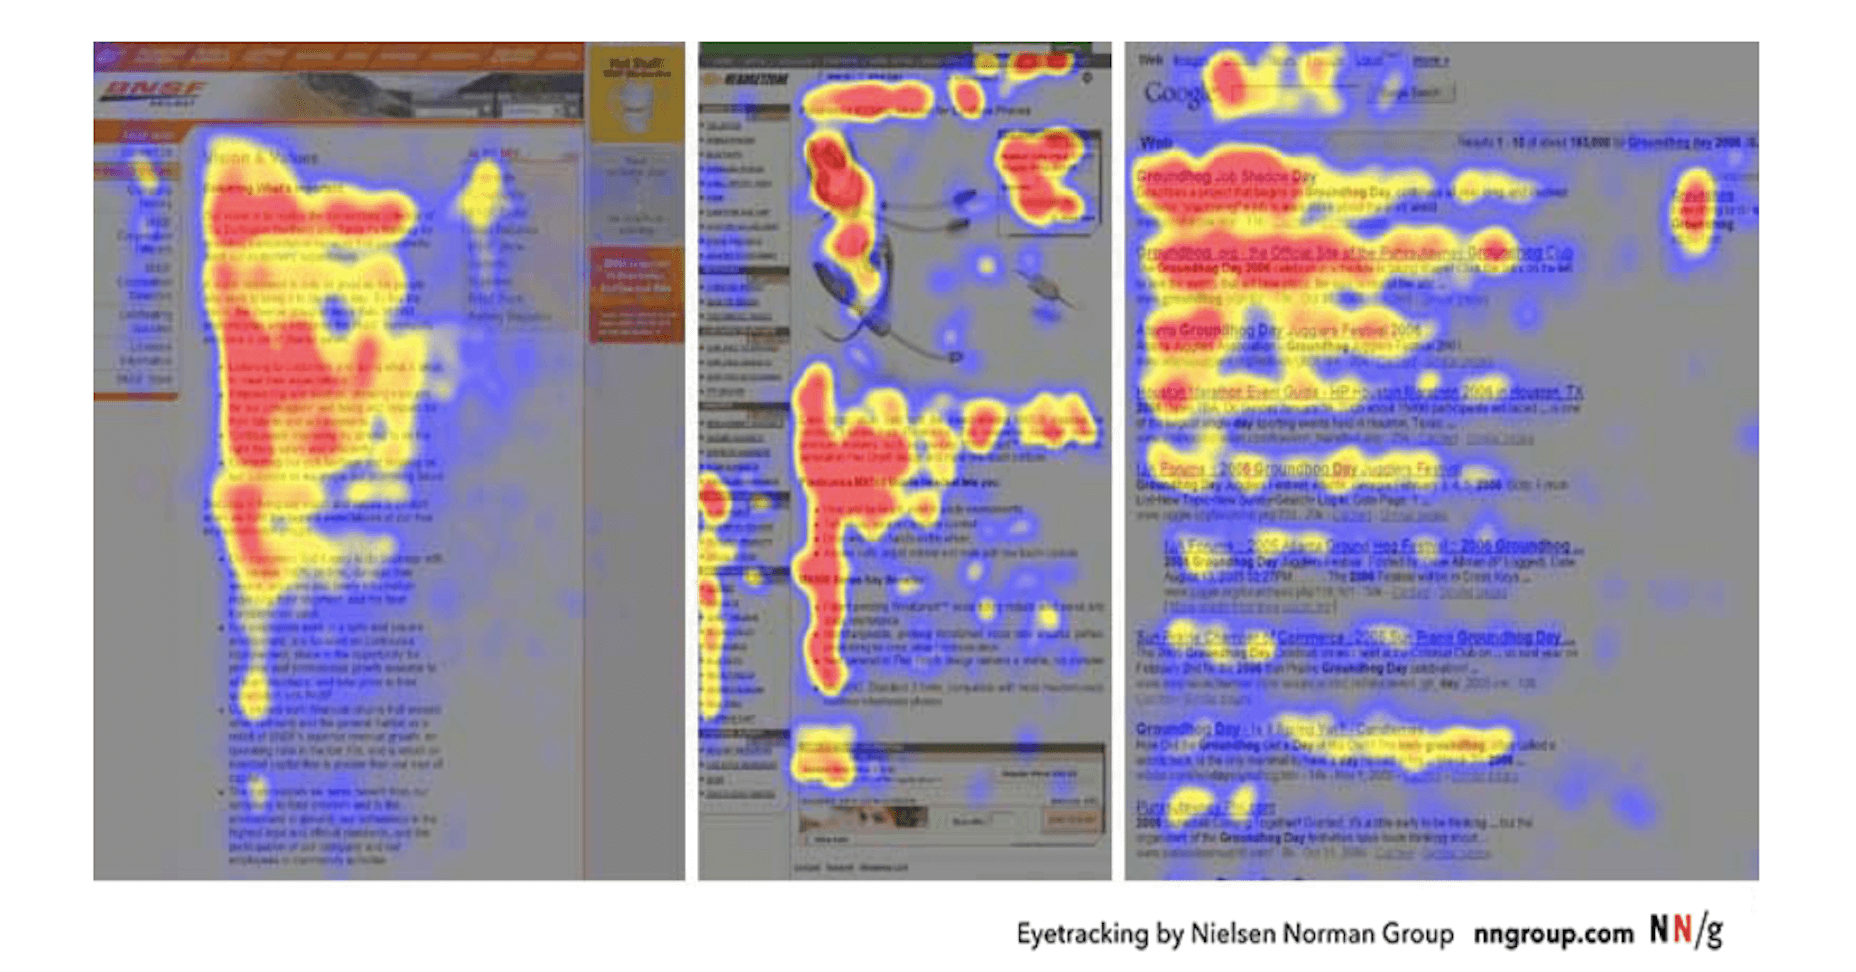 NNG Eye-tracking Study F-pattern